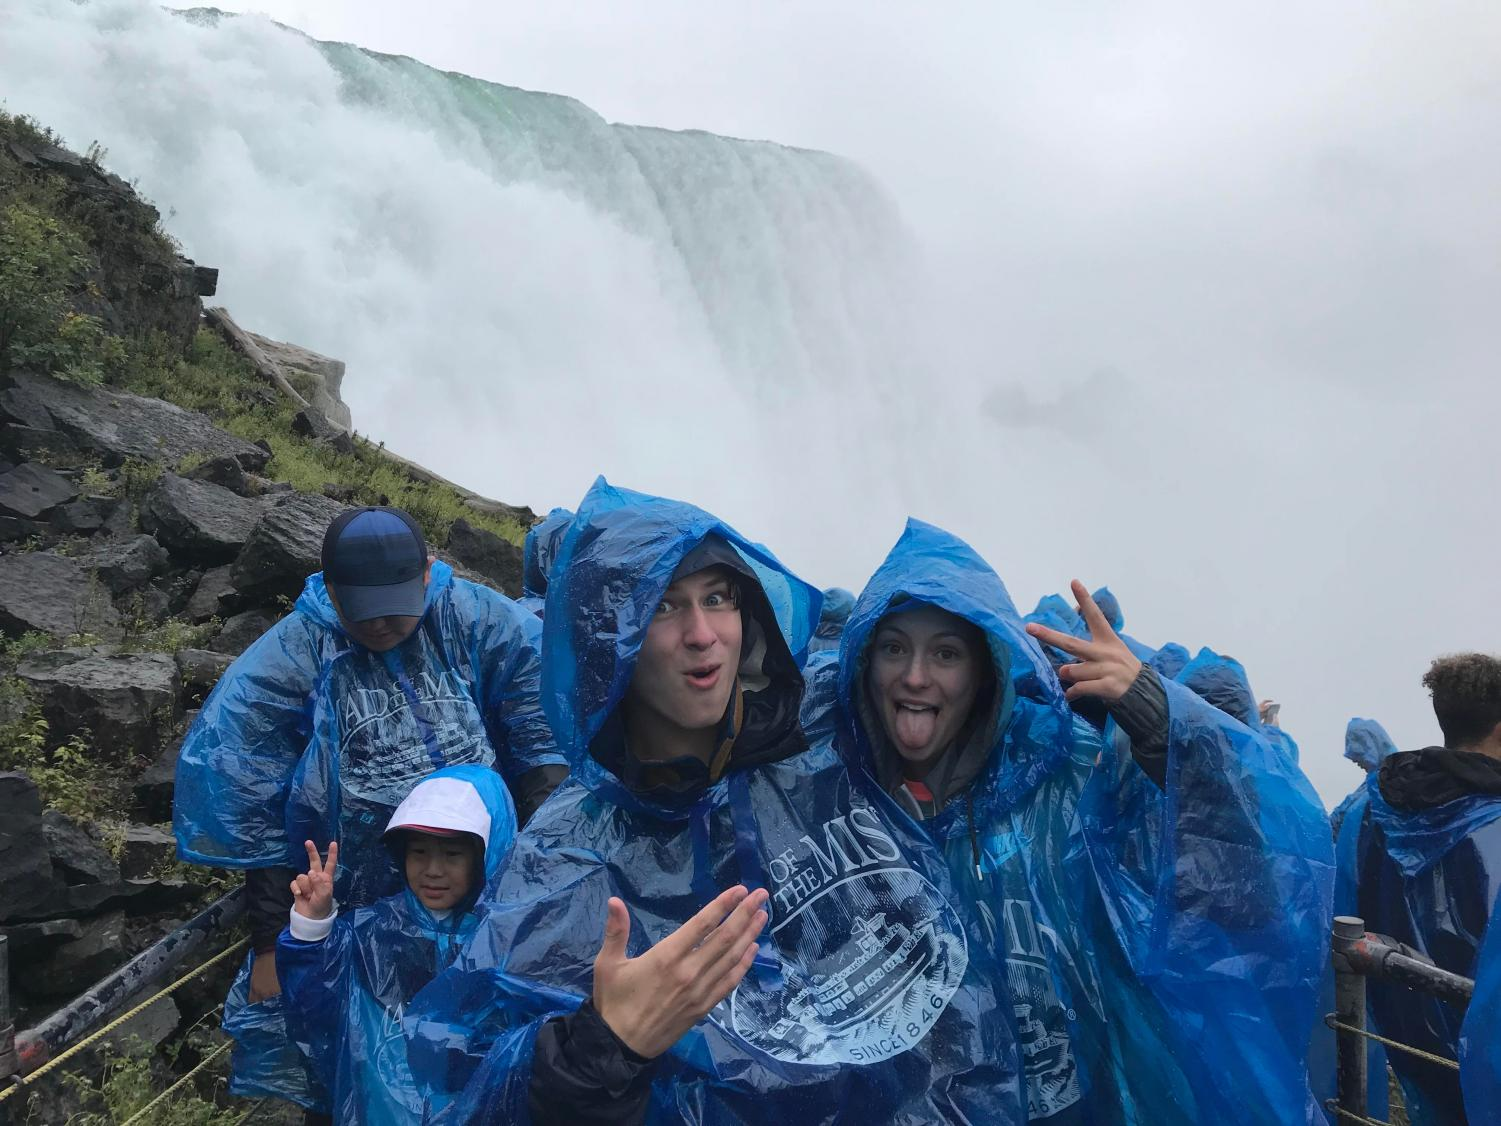 Cross country runners Sean Stuck and Amy Herrema clown around at Niagra Falls. They went to McQuaid Invitational in New York in late September. Some runners missed the Homecoming dance to compete in Rochester instead.